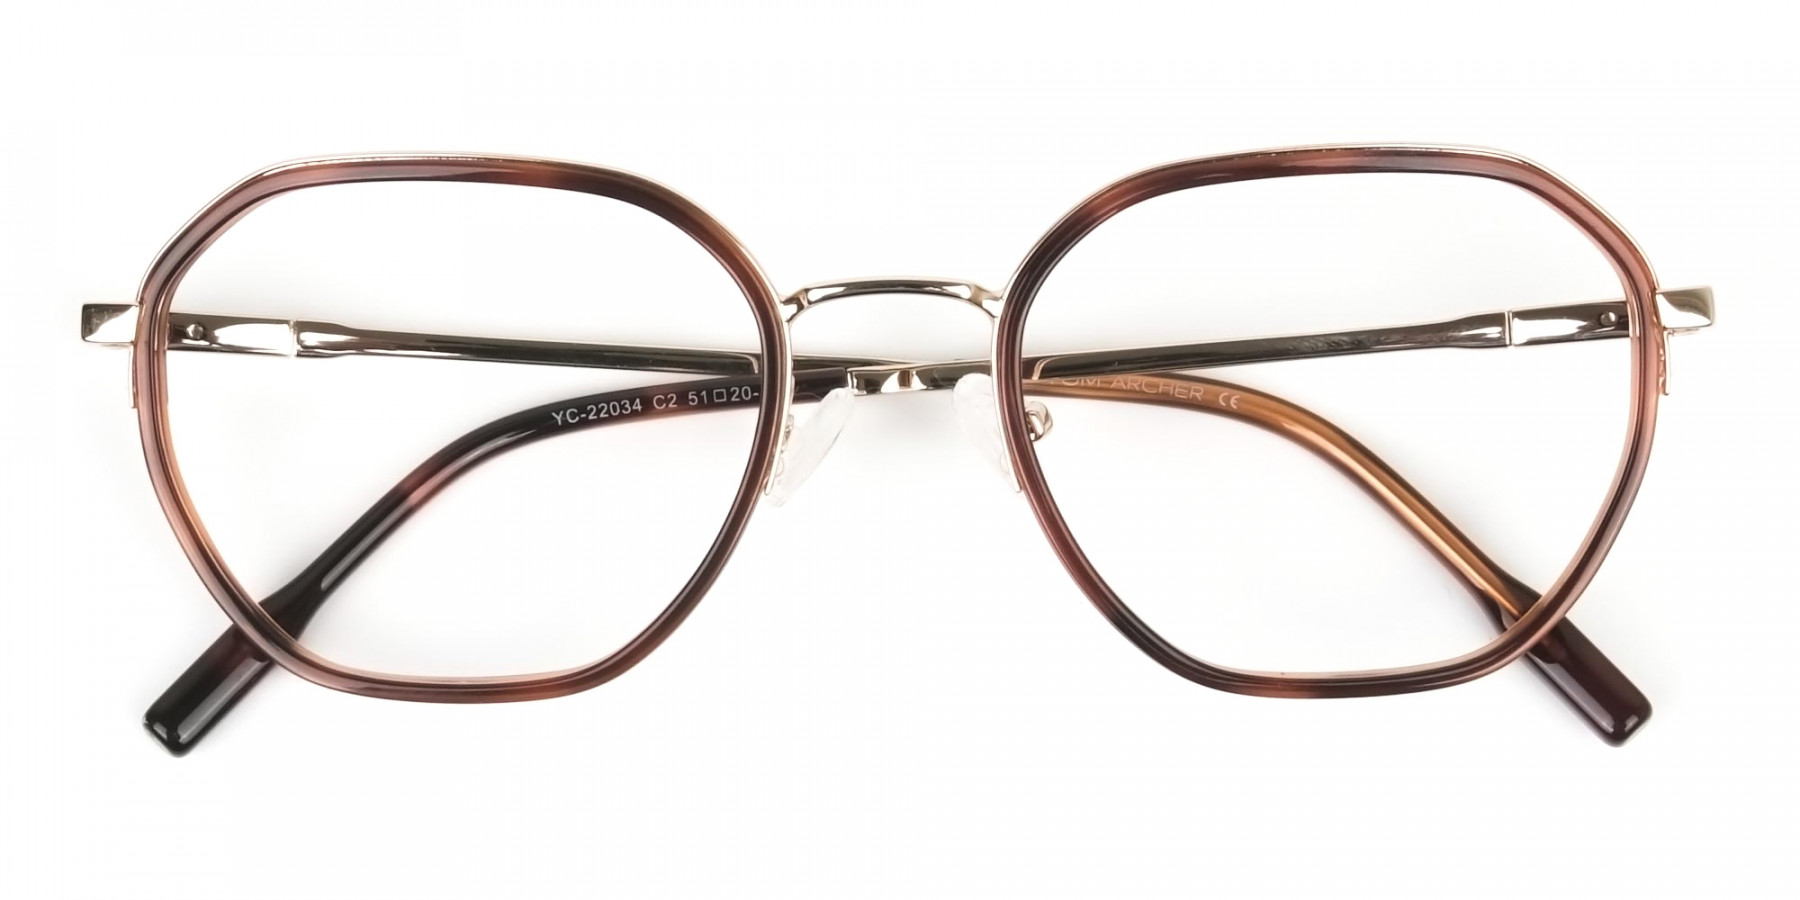 Wayfarer Brown Red Tortoise and Gold Geometric Glasses - 1